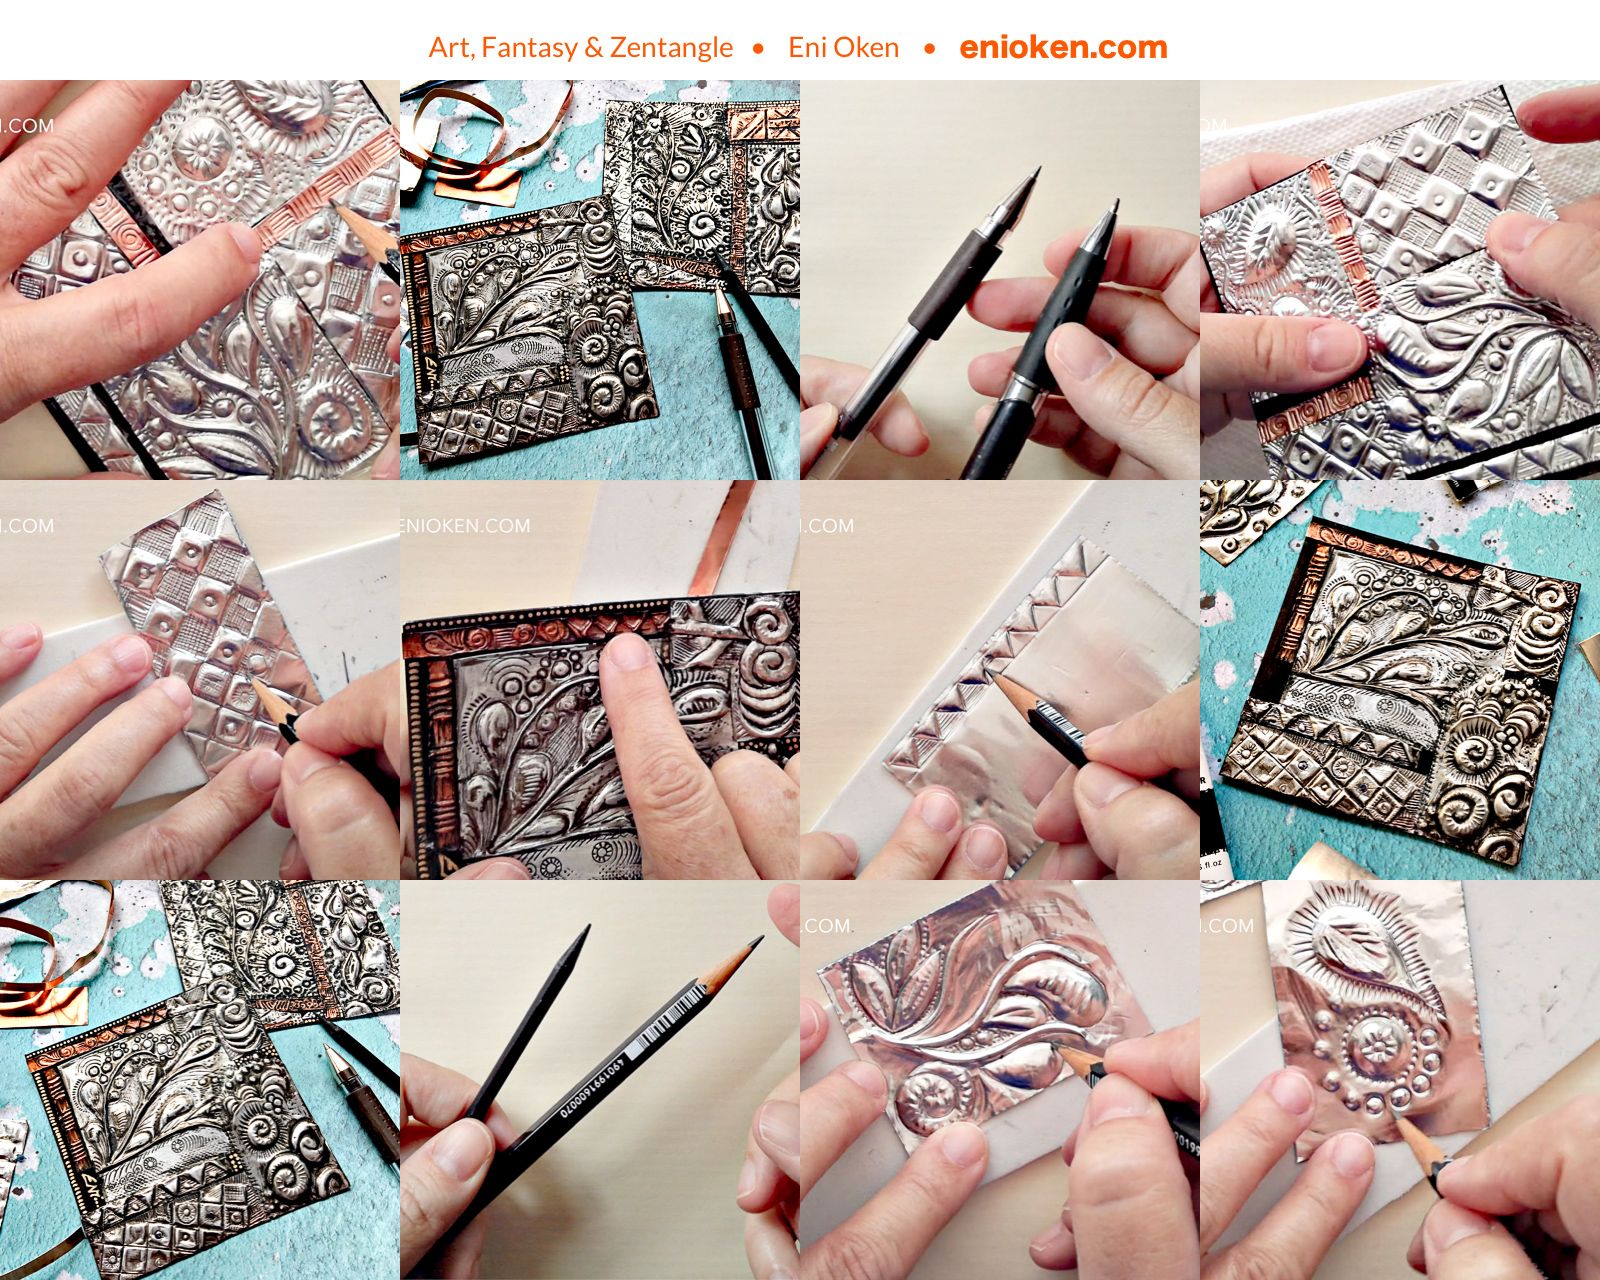 Metal Tangles lesson bundle or Ebook — Eni Oken